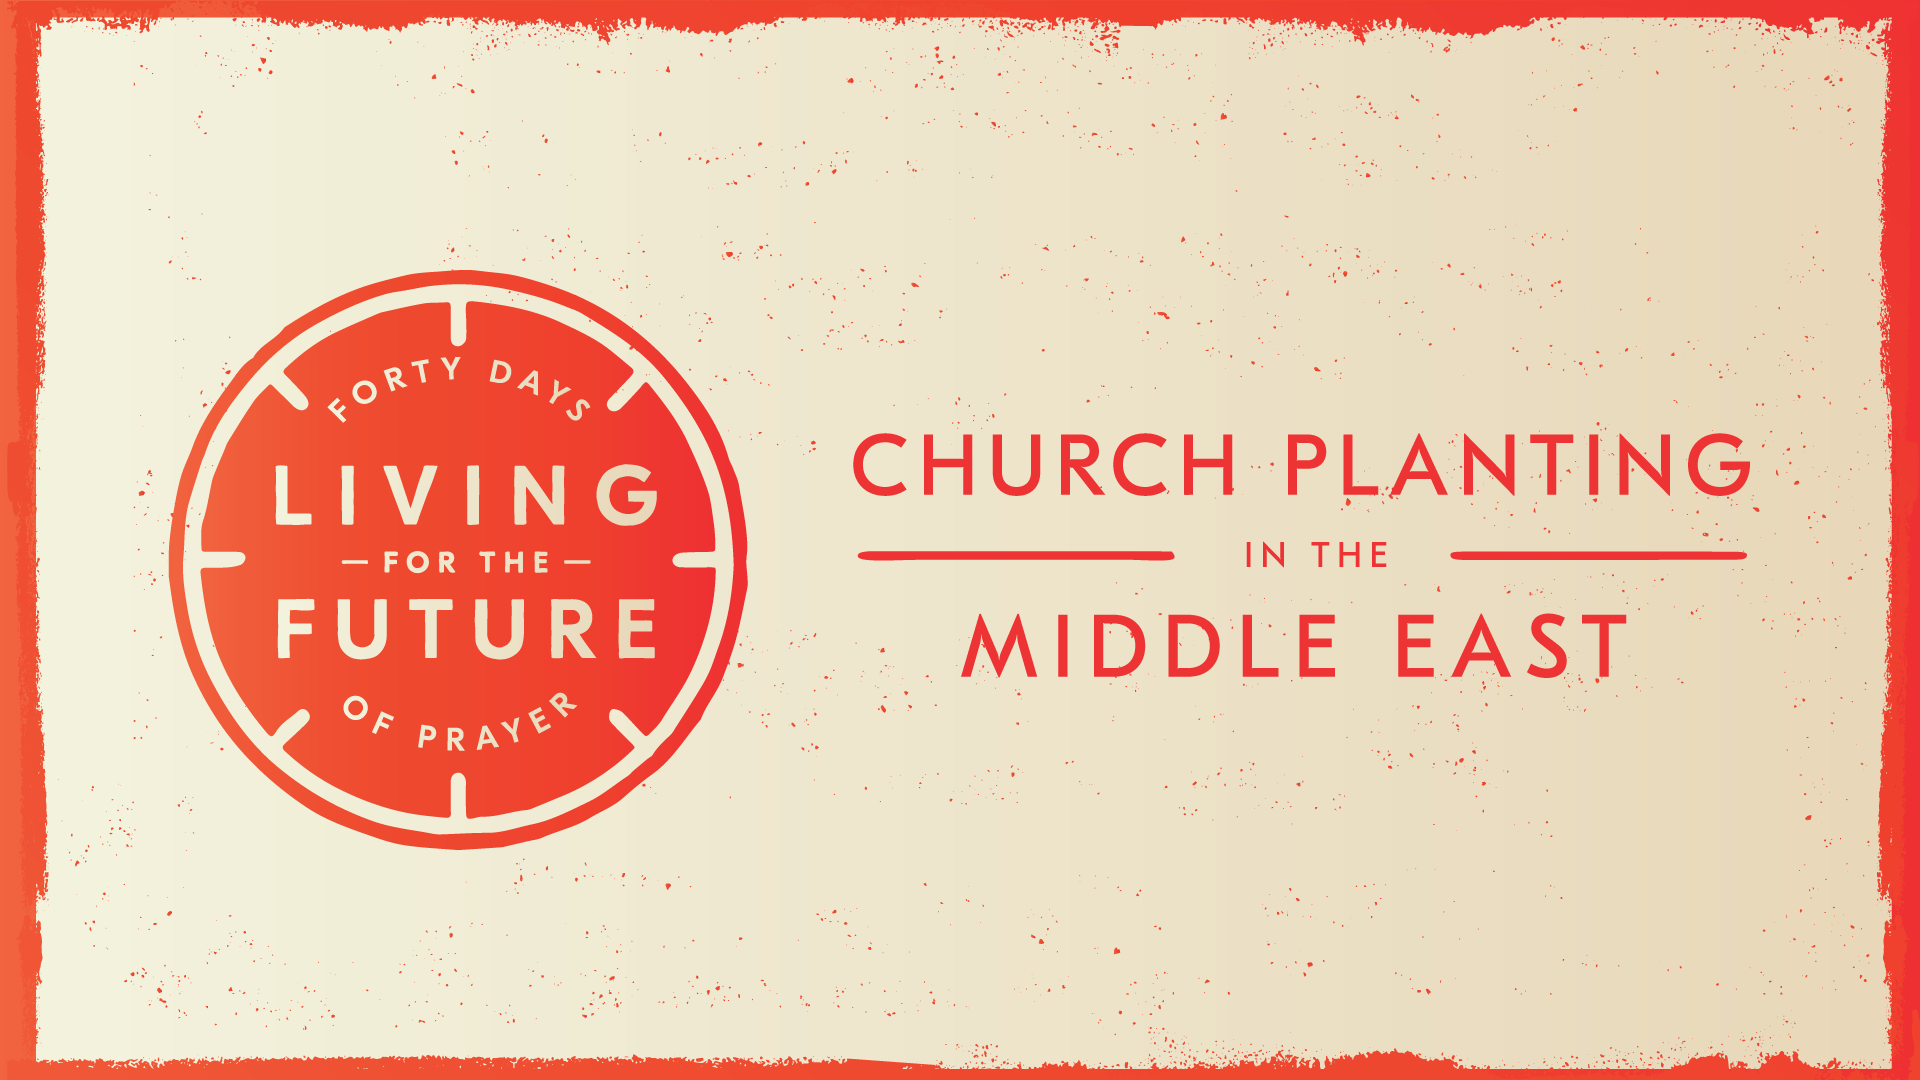 40 Days Of Prayer: Church Planting: Middle East    December 17th, 2018